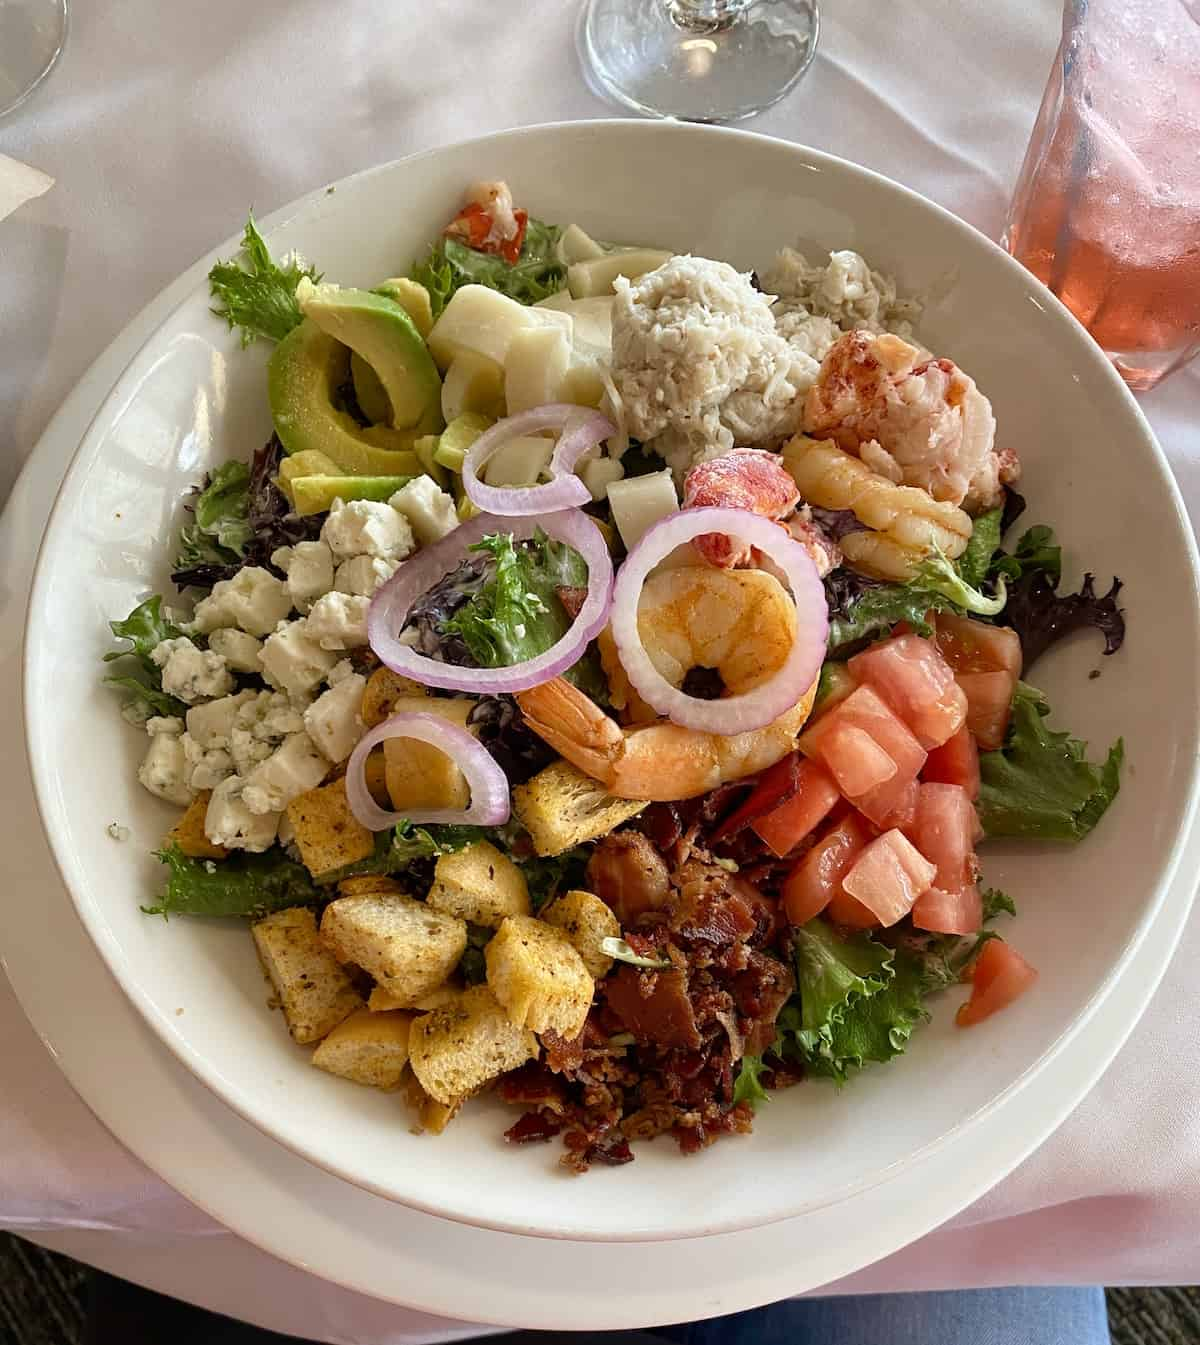 Salad with bacon, cheese, tomatoes, shrimp, crab, lobster, and avocado in a white bowl.